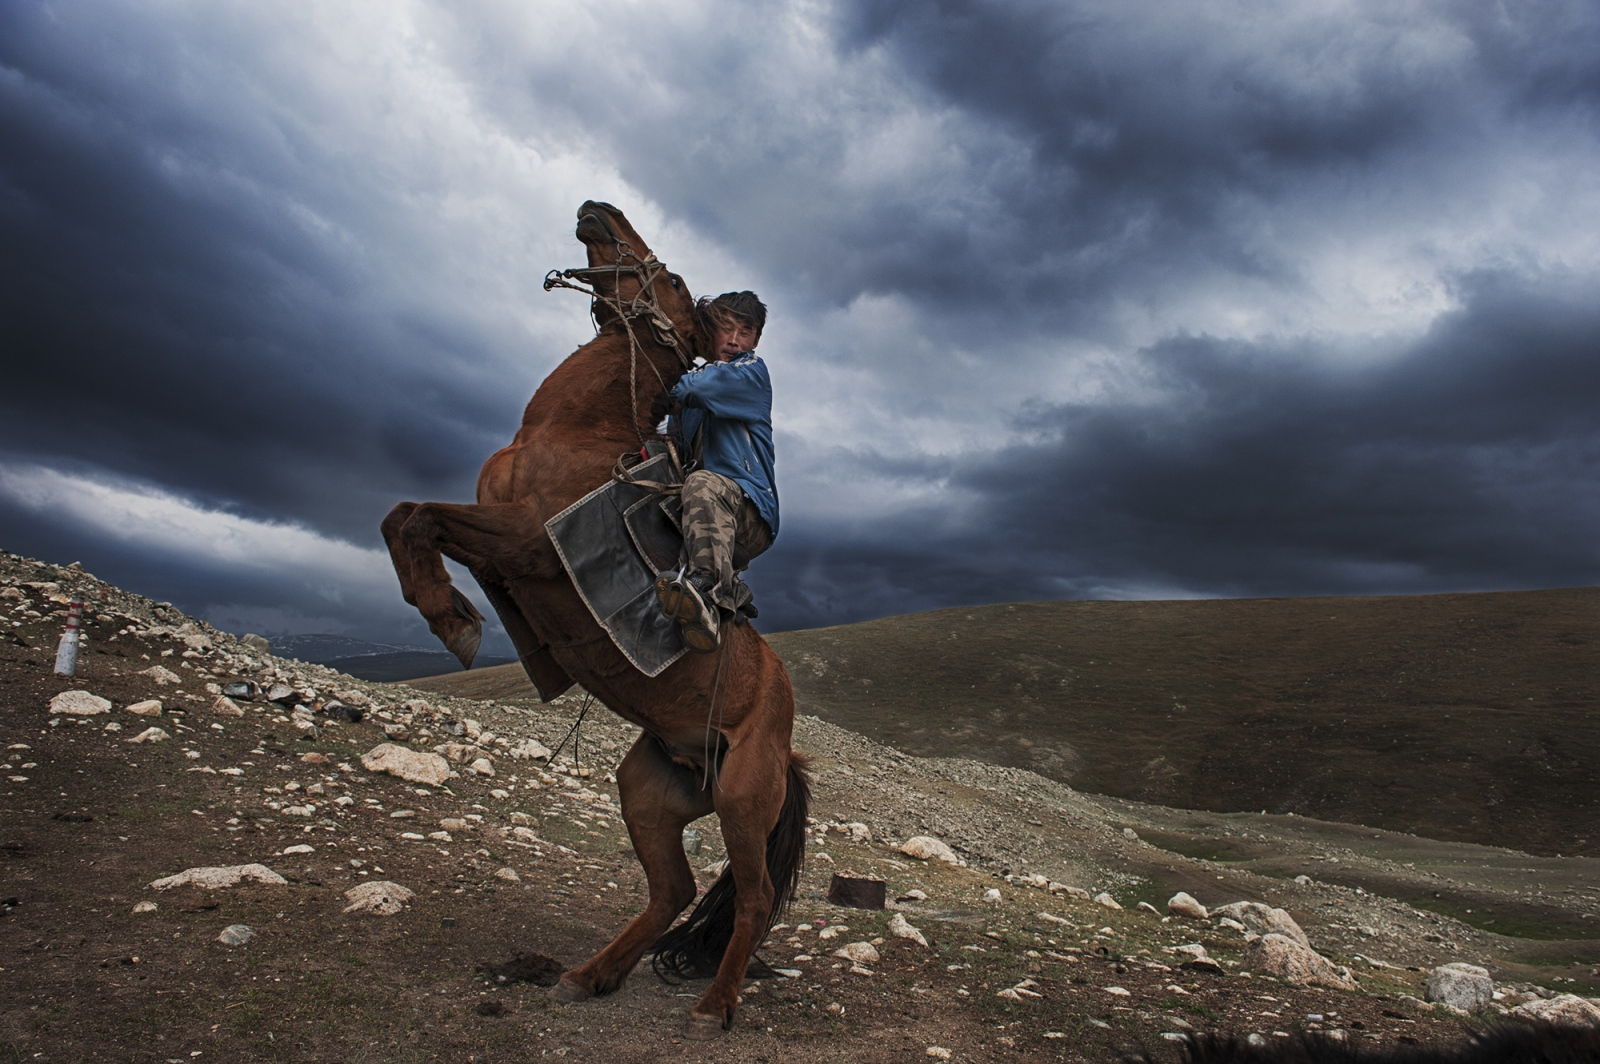 Mongolia. Kazakh nomads in the Altai region of Western Mongolia.